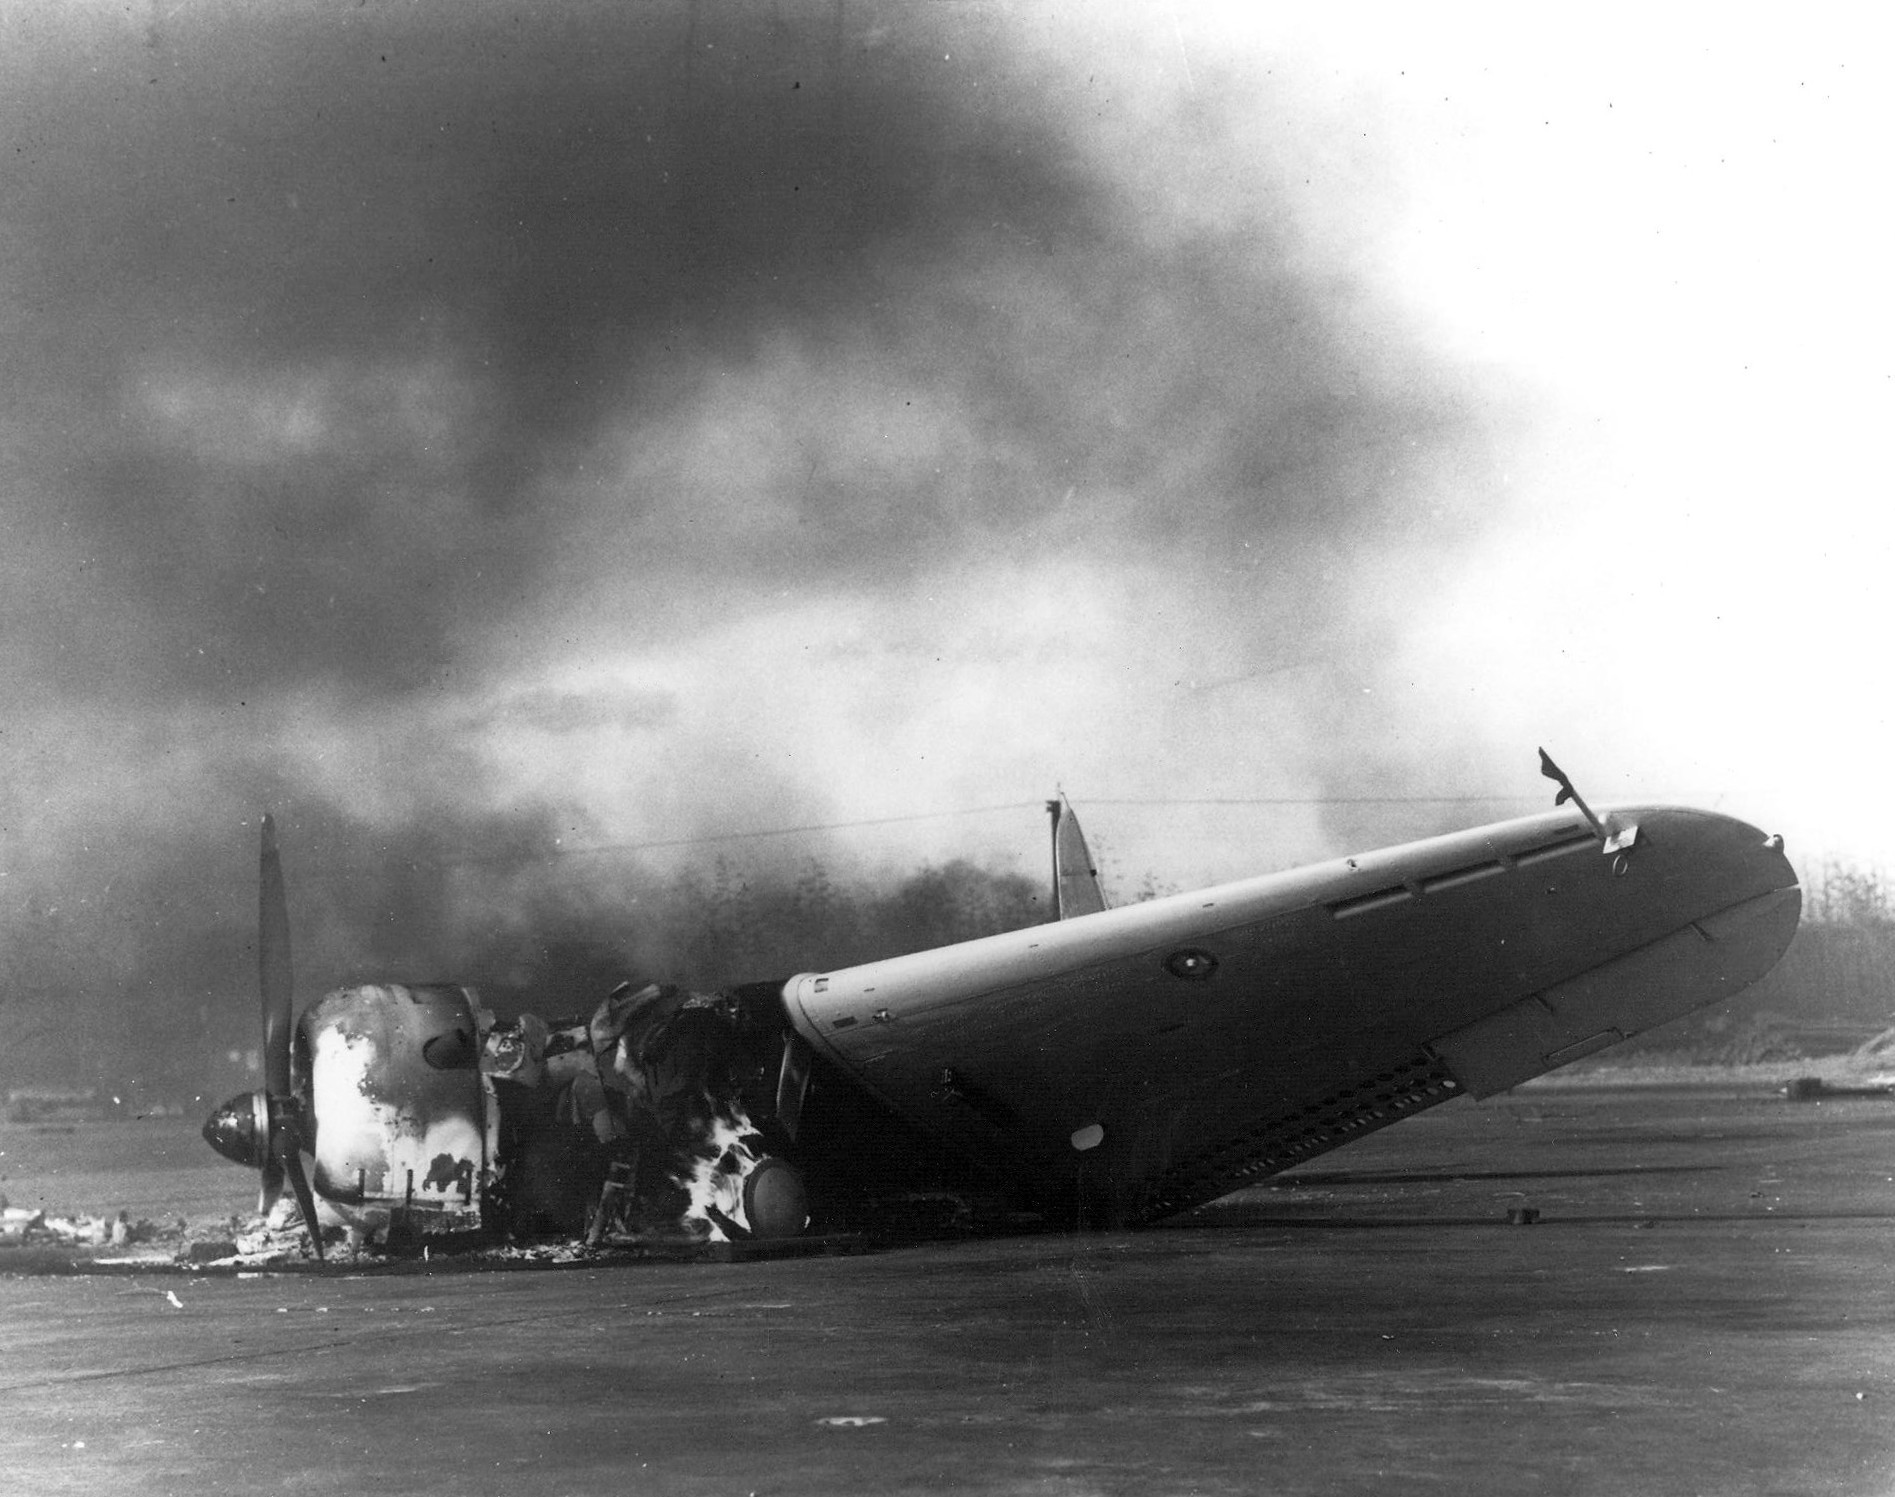 The remains of a Douglas SBD Dauntless dive-bomber burns on Ewa's ramp on Dec. 7, 1941.